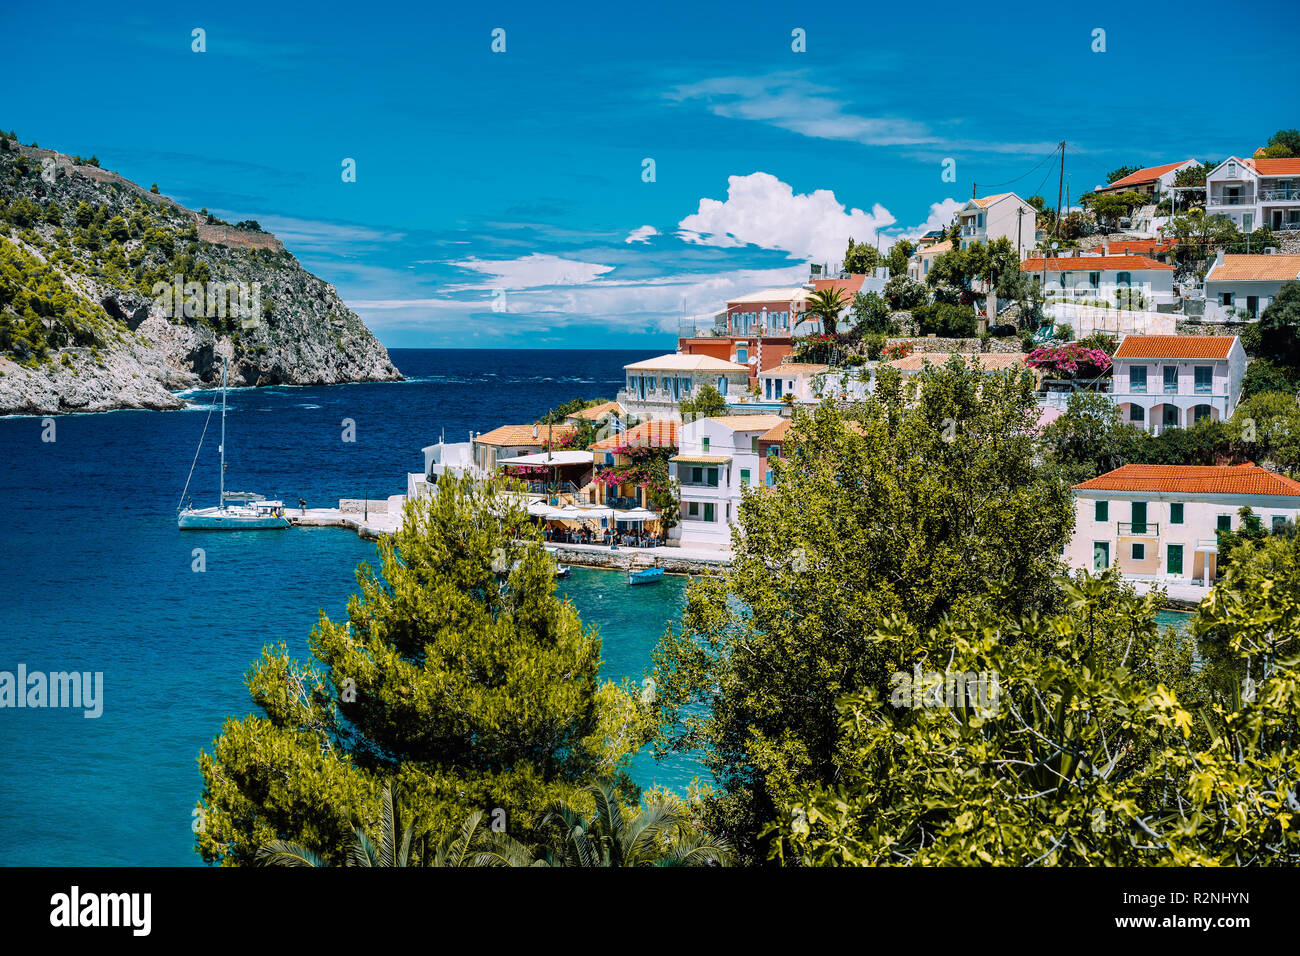 Assos village. Beautiful view to vivid colorful houses near blue turquoise colored transparent bay lagoon with yacht ship. Kefalonia, Greece - Stock Image